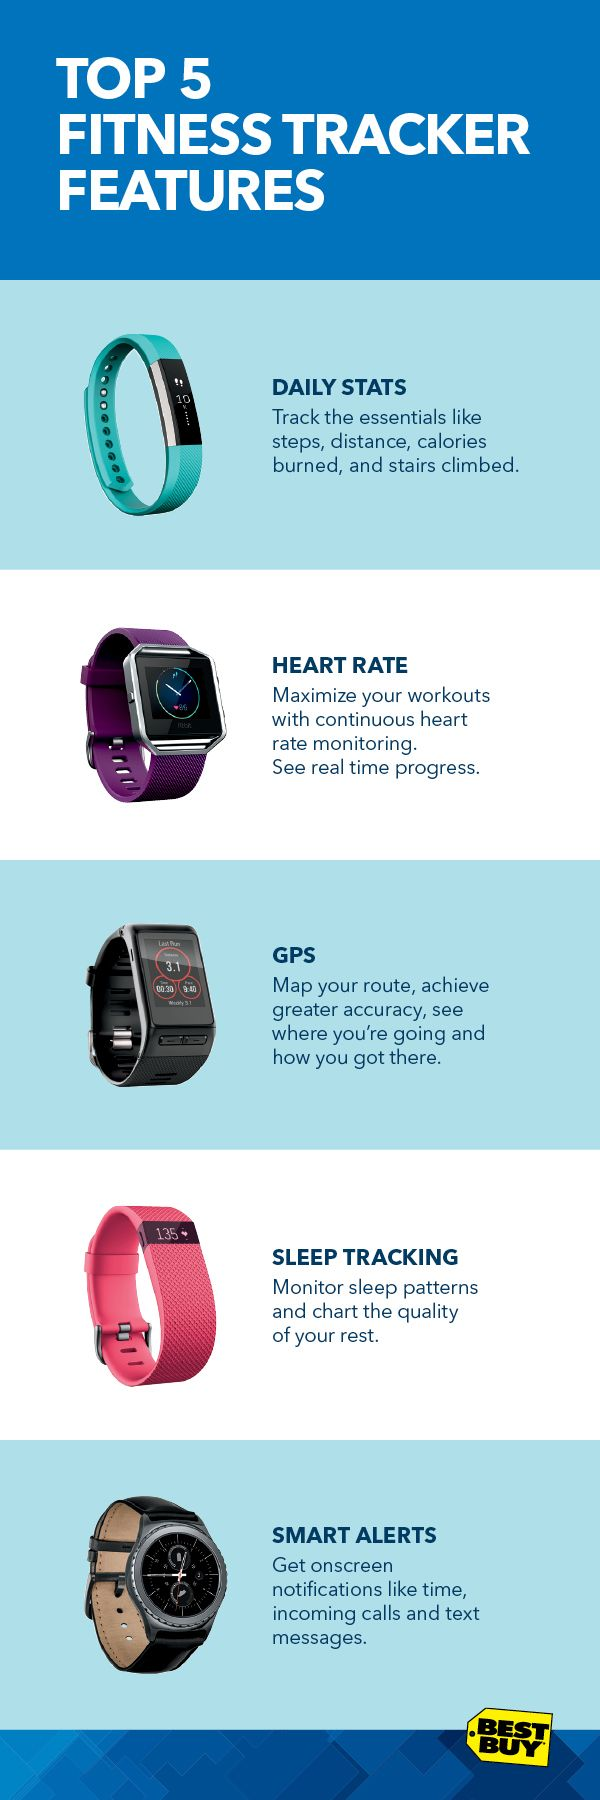 Most fitness trackers can do the basics. Like count steps and track how many calories you've burned. But from there, things get a little complicated. The latest models can monitor your lifestyle. 24/7. Plus get expert advice to make the right choice. Our online selector tool lets you choose features and compare devices from Fitbit, Samsung, Garmin, Microsoft and more. Shop wearable tech at Best Buy and stay on track.